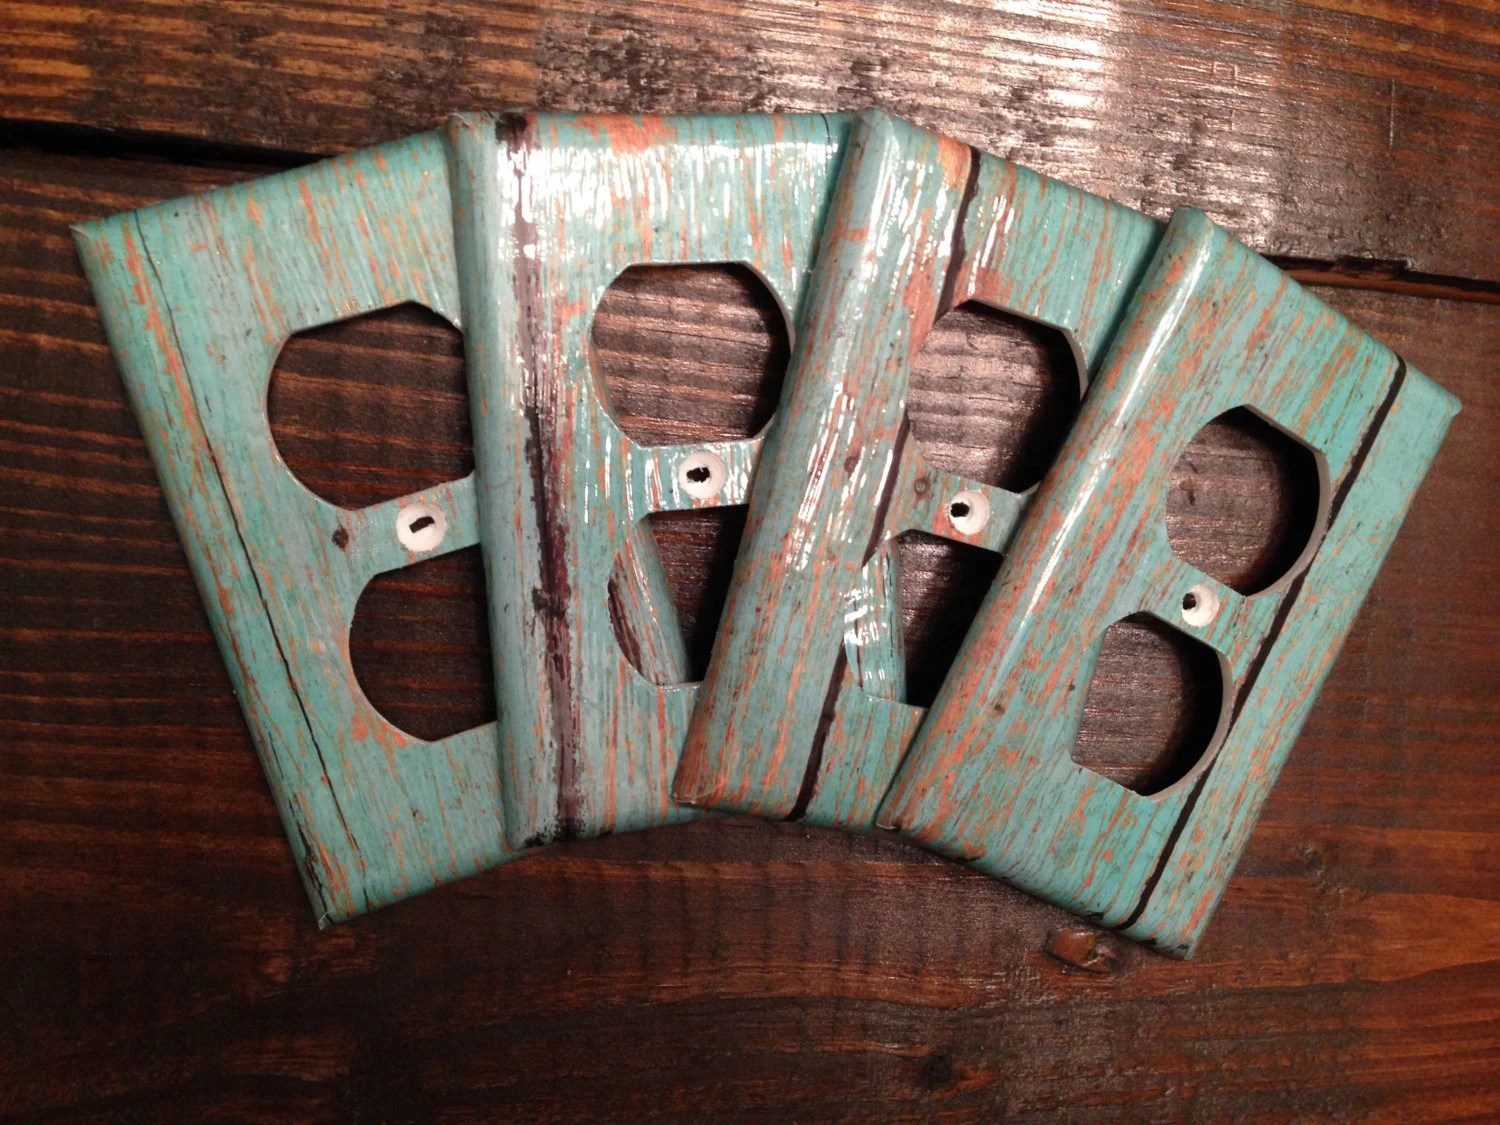 Teal Wood Grain Light Switch And Outlet Covers Rustic